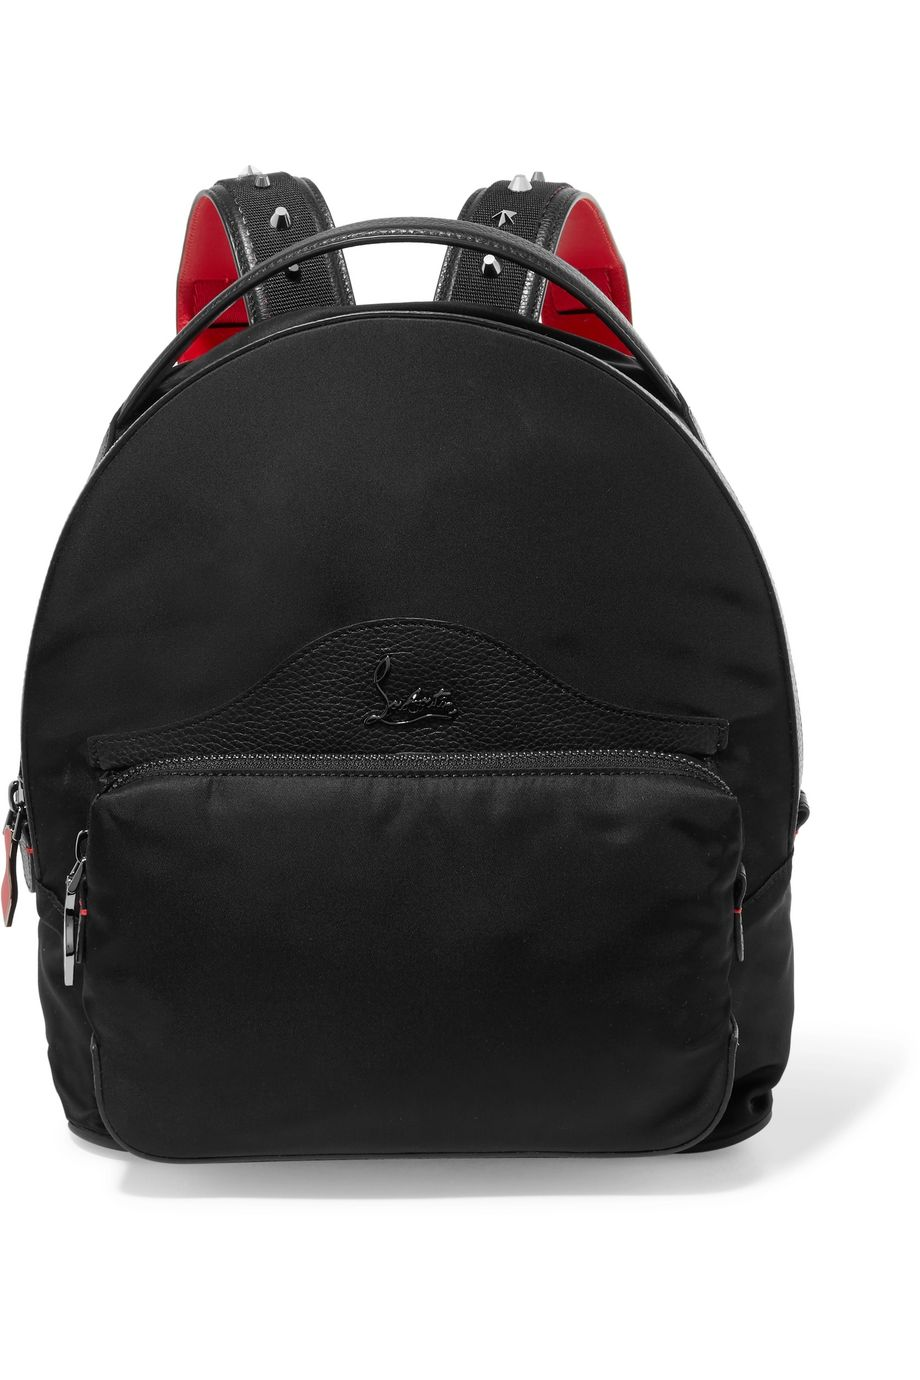 Christian Louboutin Leather-trimmed studded shell backpack